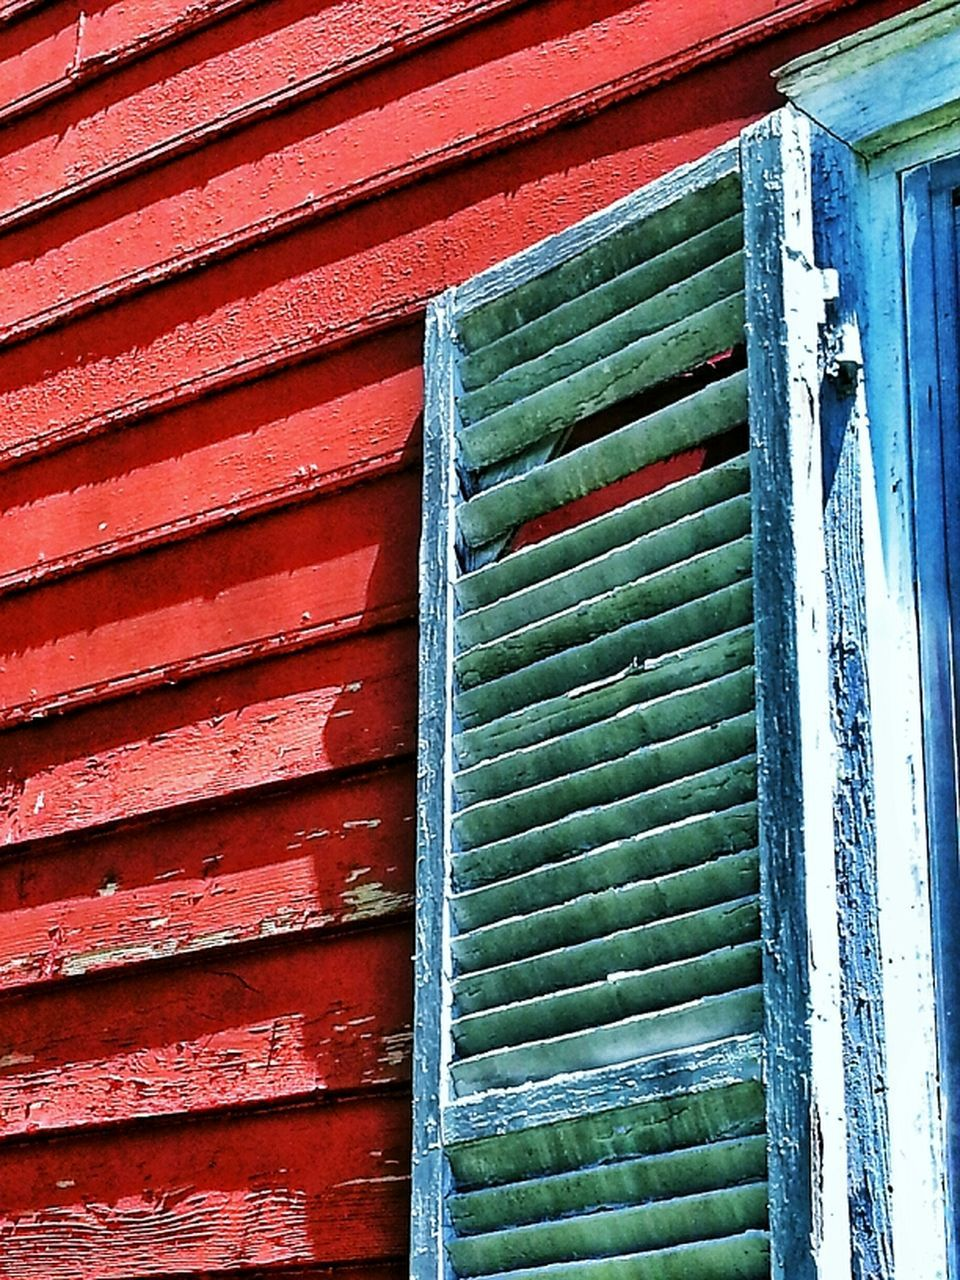 door, architecture, no people, day, built structure, building exterior, outdoors, multi colored, backgrounds, red, close-up, corrugated iron